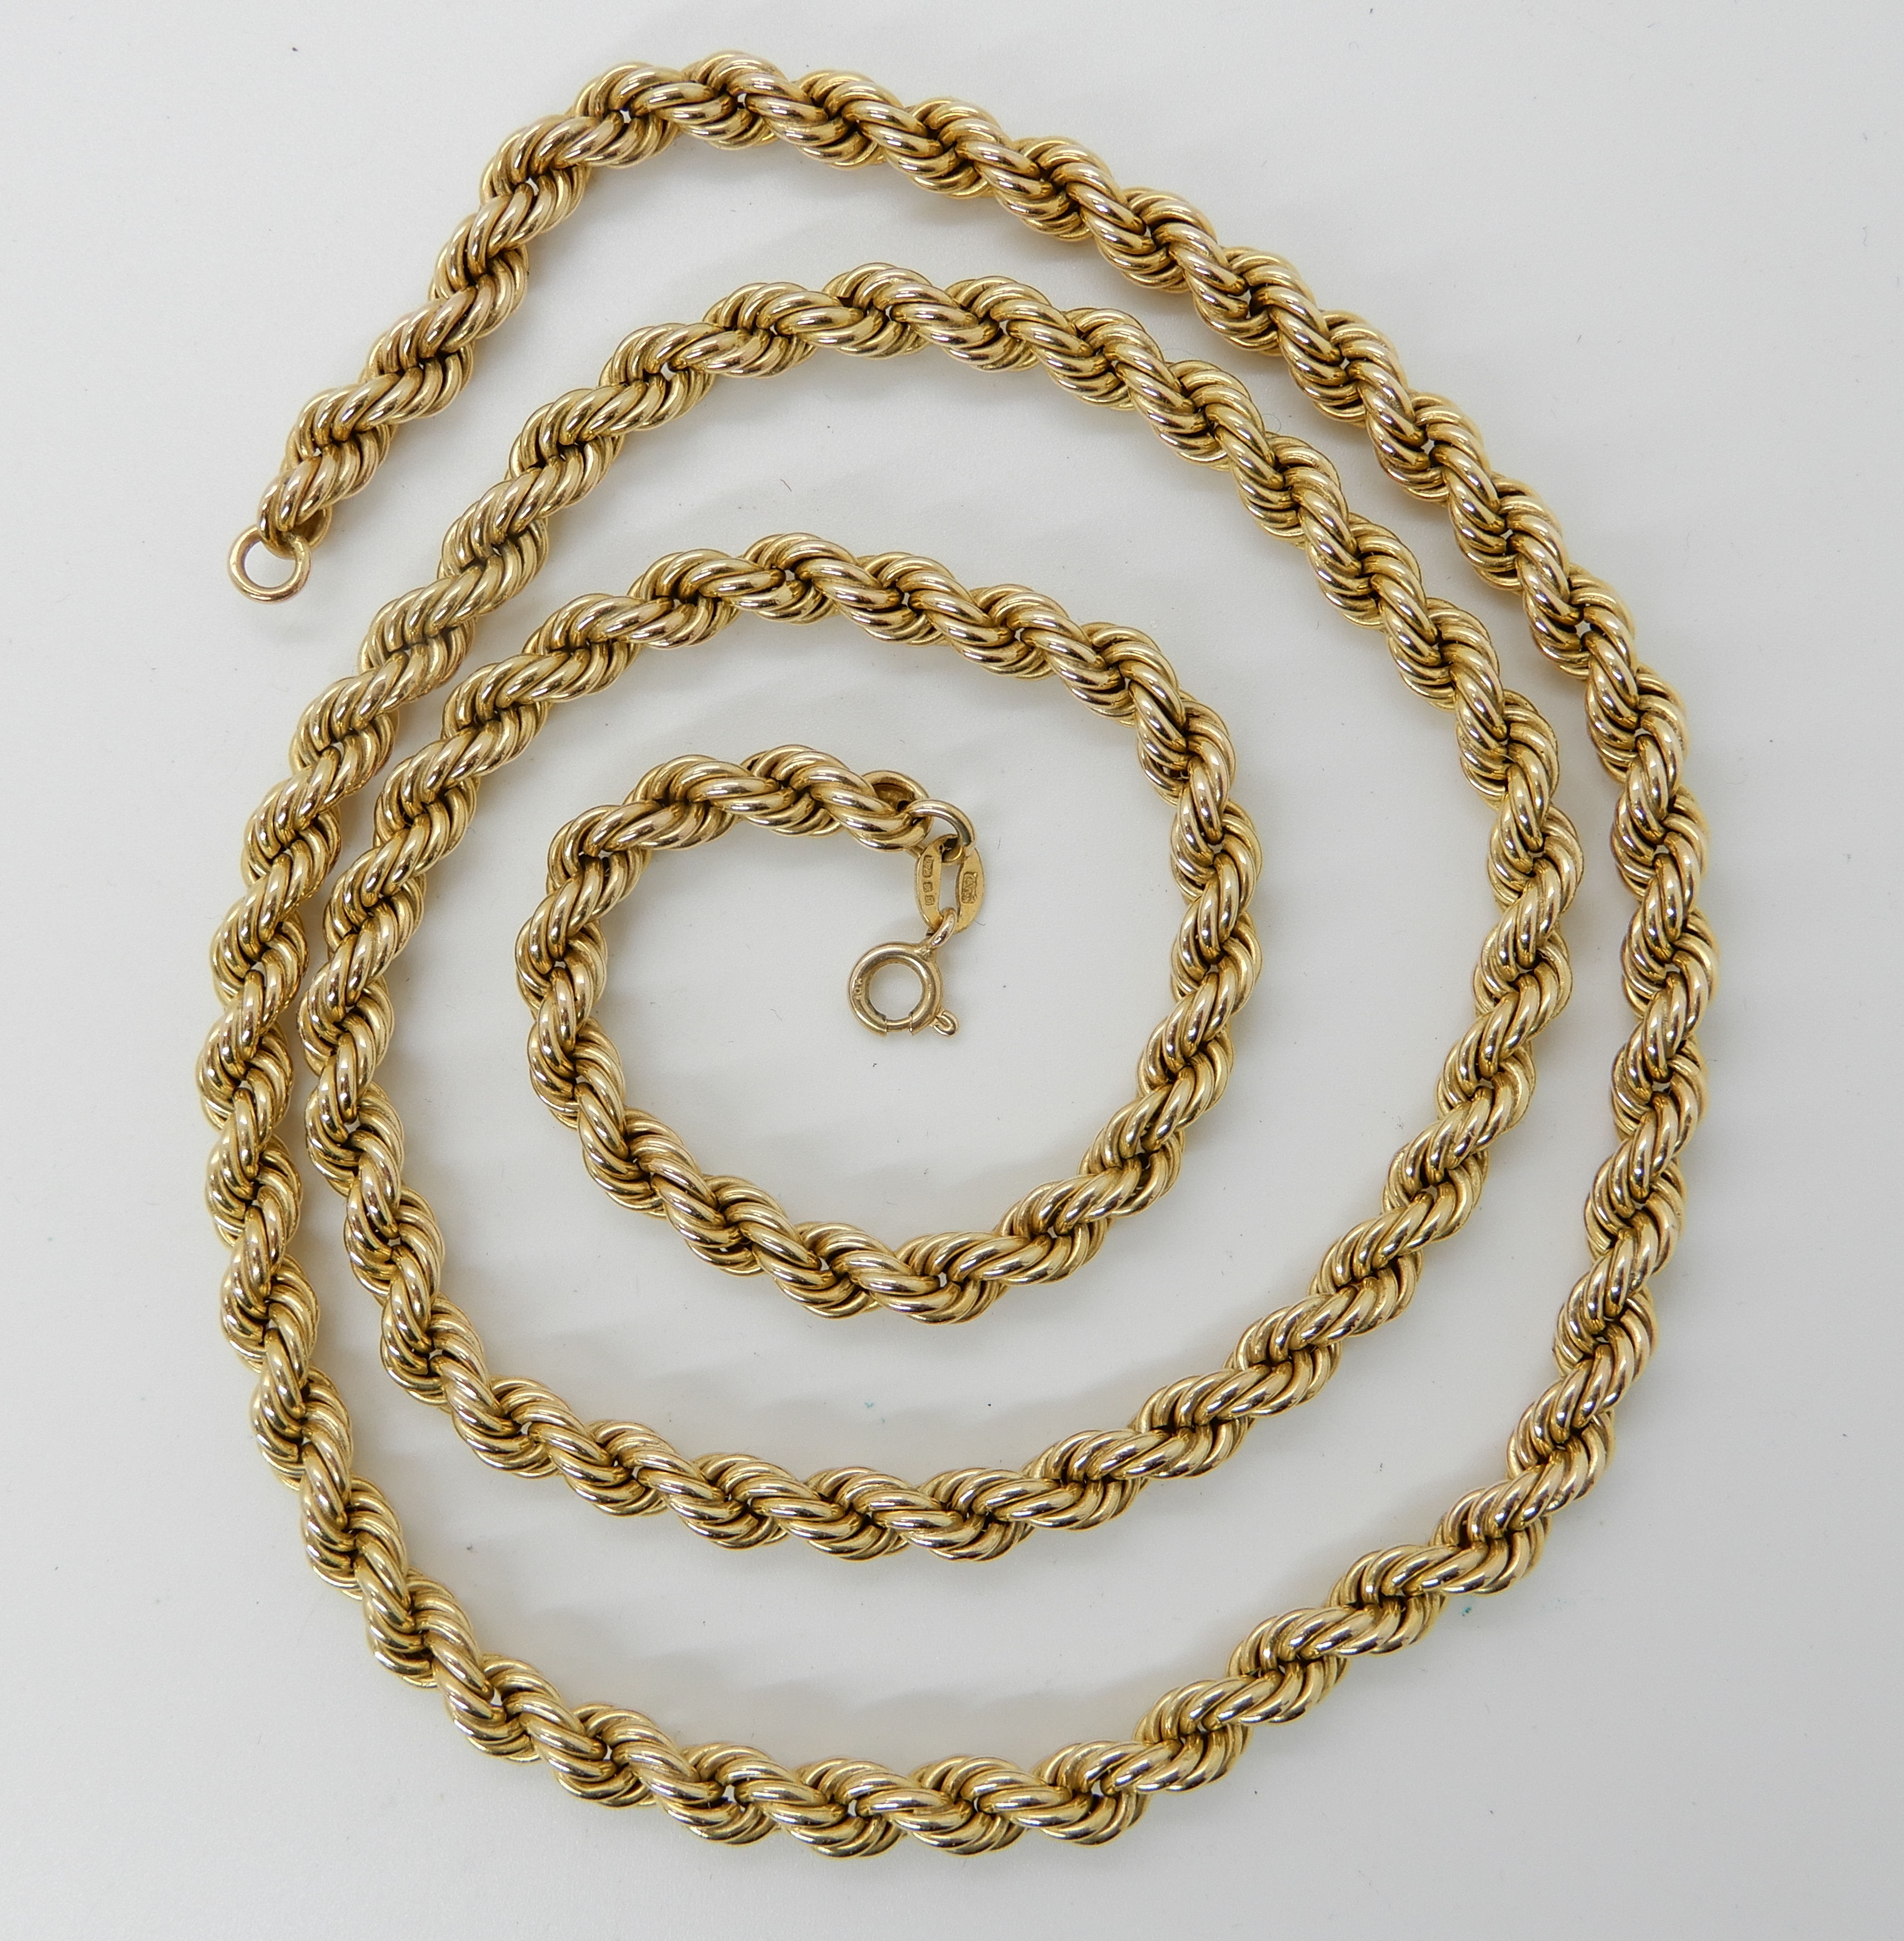 Lot 31 - A 9ct gold long rope chain, length 69cm, weight 23.5gms Condition Report: Available upon request